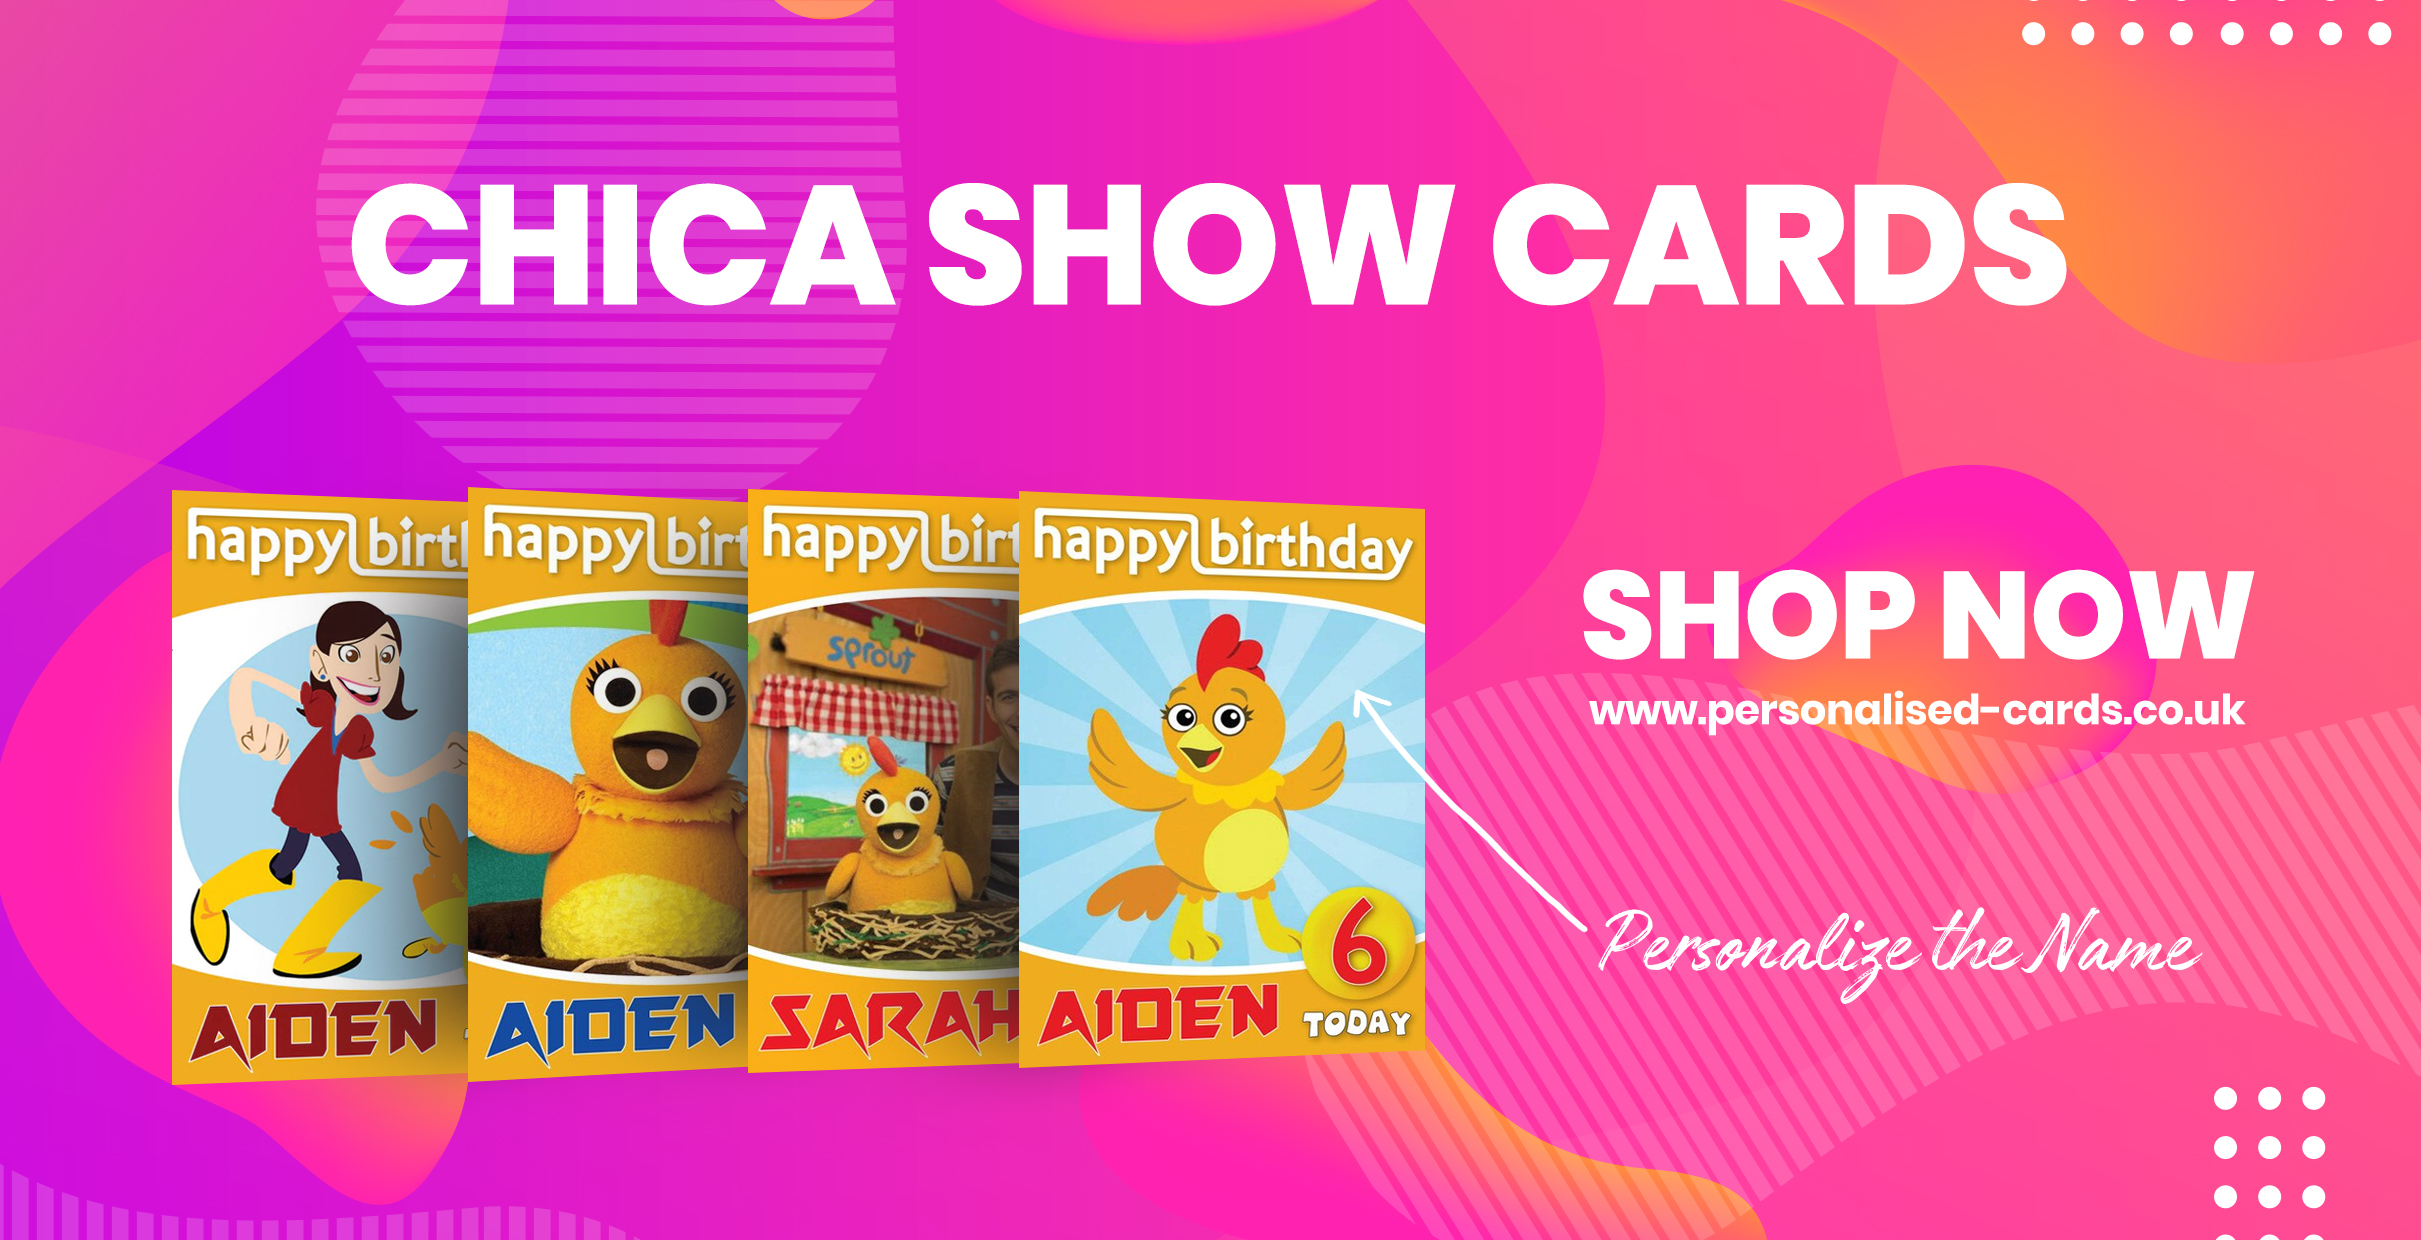 chica-show-cards.jpg